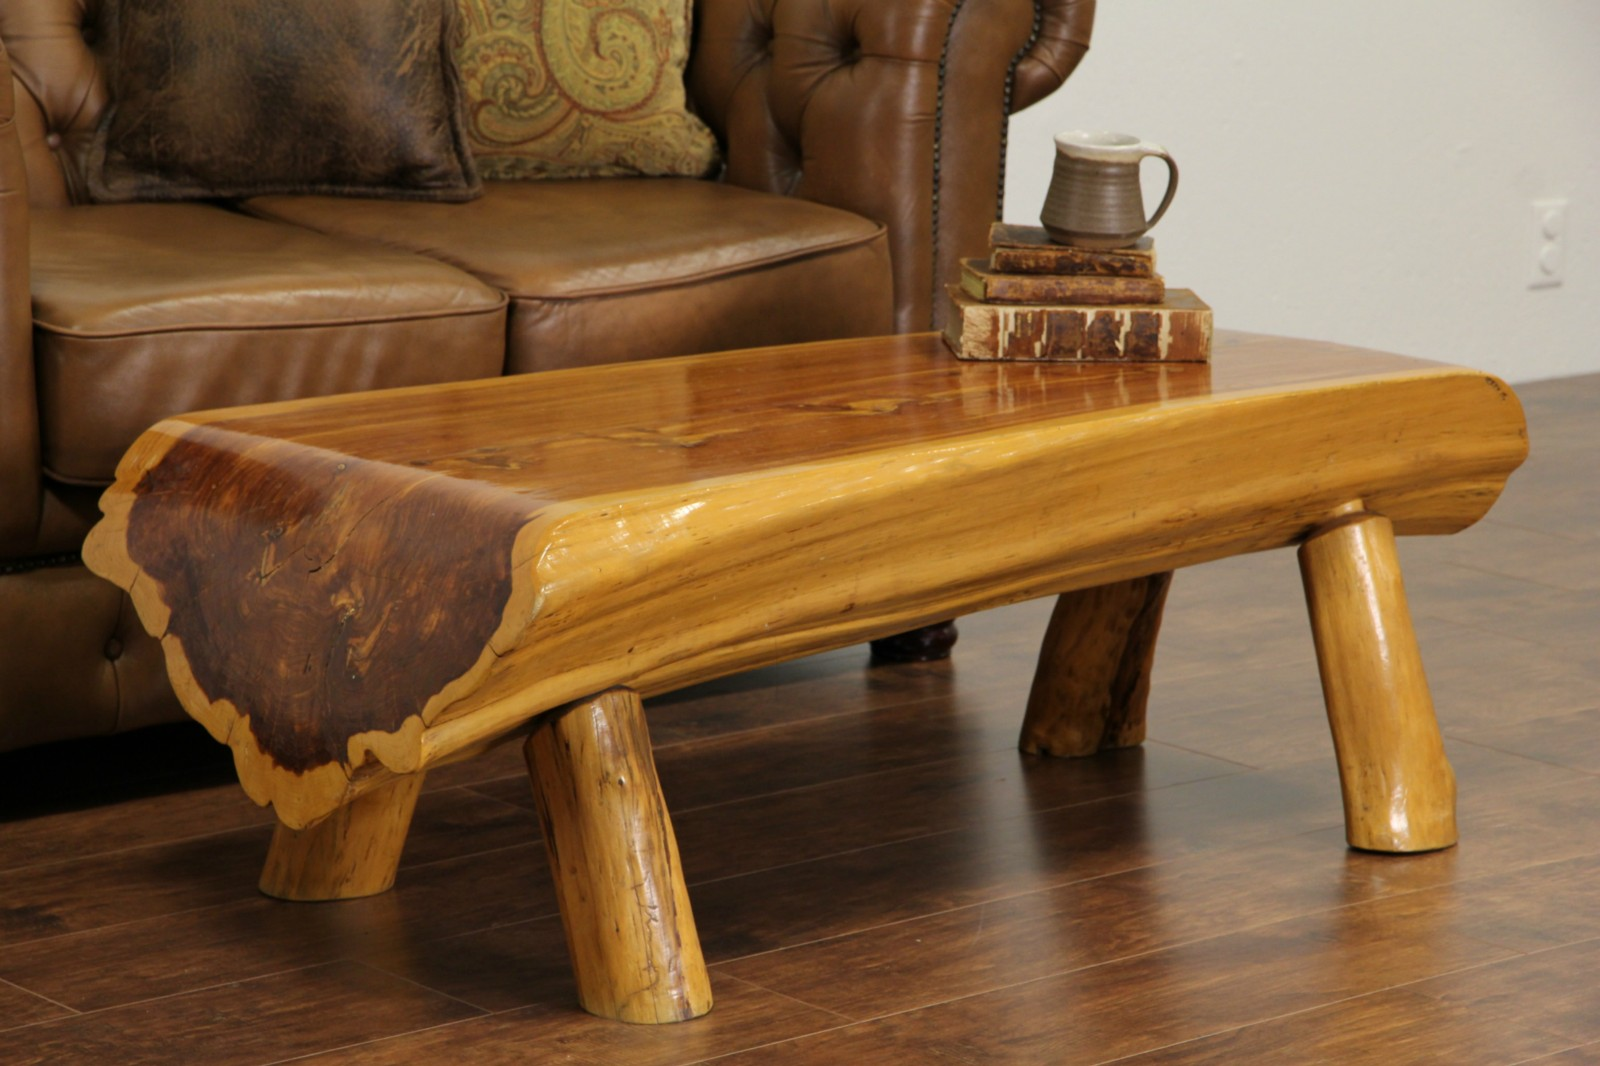 Sold cedar log vintage rustic coffee table or bench for Log coffee table